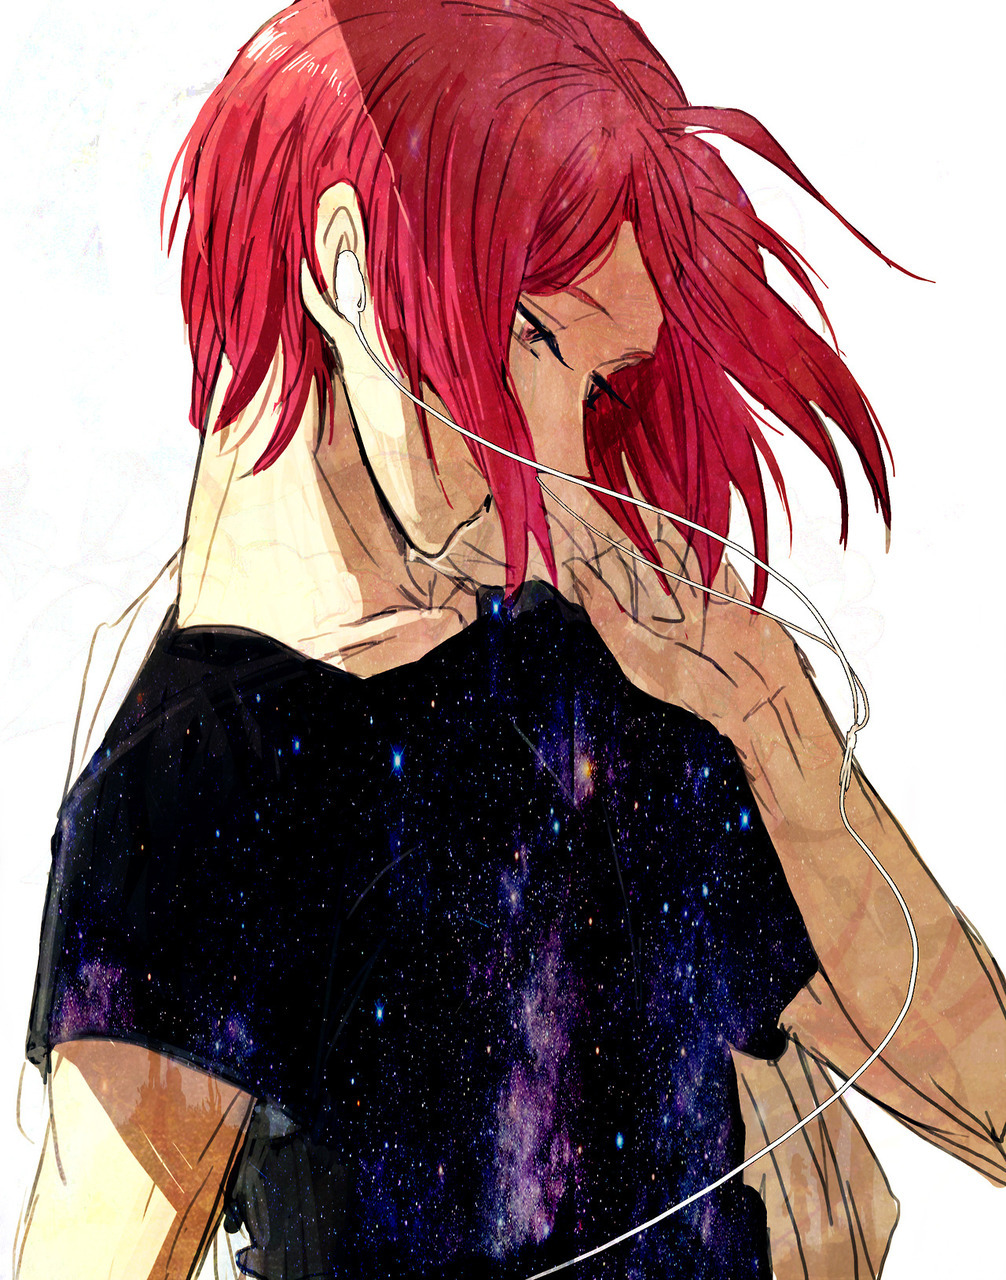 Rin Matsuoka Tumblr Discovered By Kitsune Sempai This is my art blog where i will be posting my art/fanart. rin matsuoka tumblr discovered by